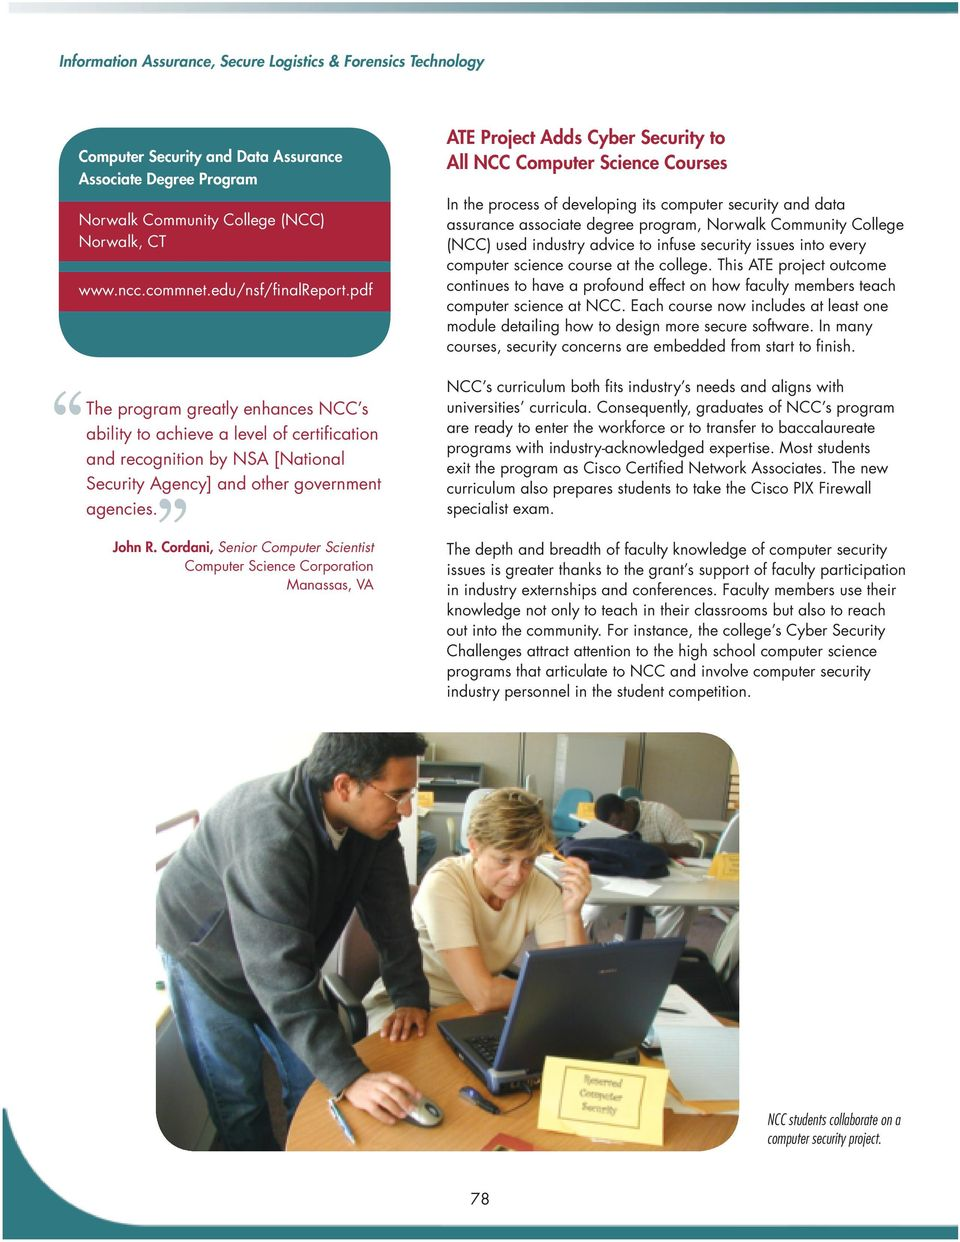 Cordani, Senior Computer Scientist Computer Science Corporation Manassas, VA ATE Project Adds Cyber Security to All NCC Computer Science Courses In the process of developing its computer security and